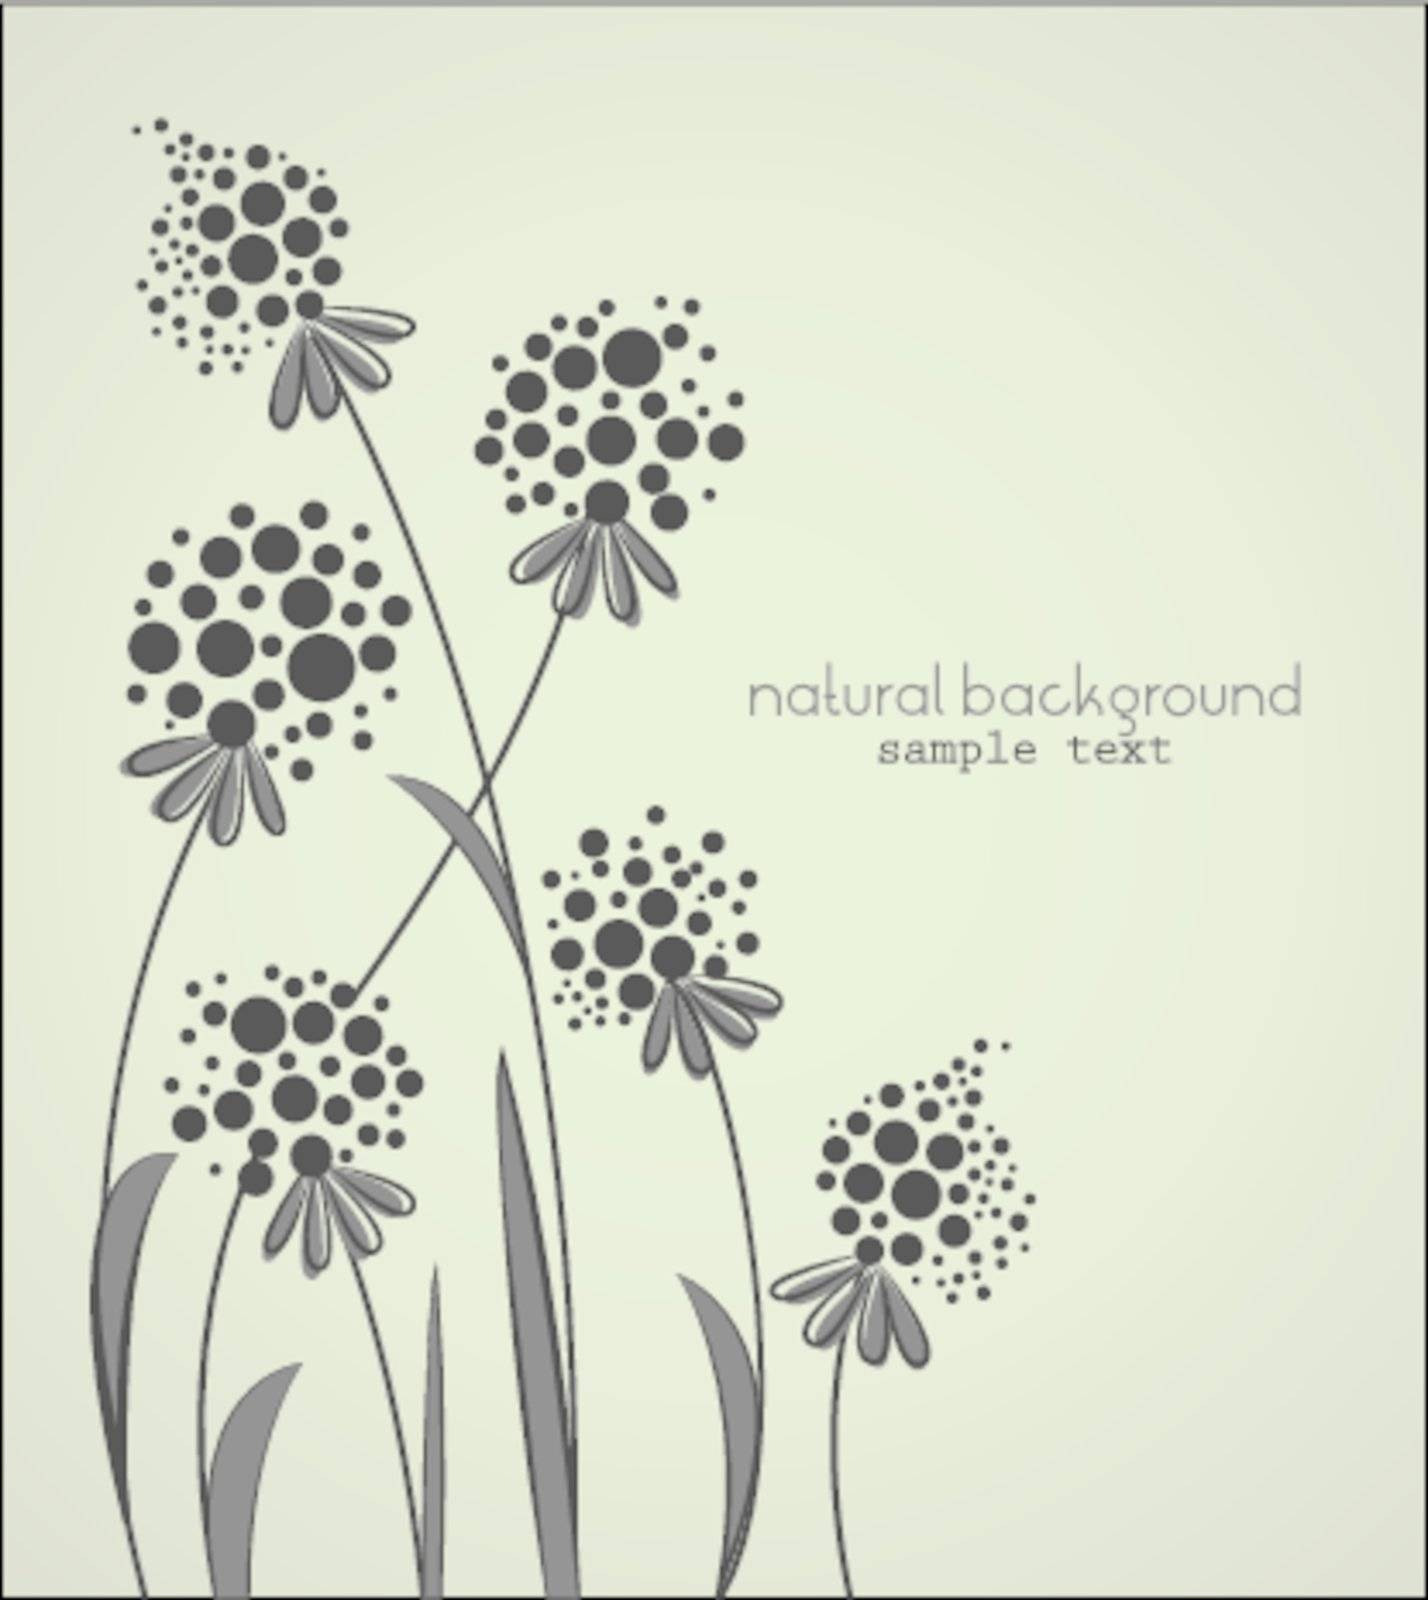 Floral abstract vector background with space for text